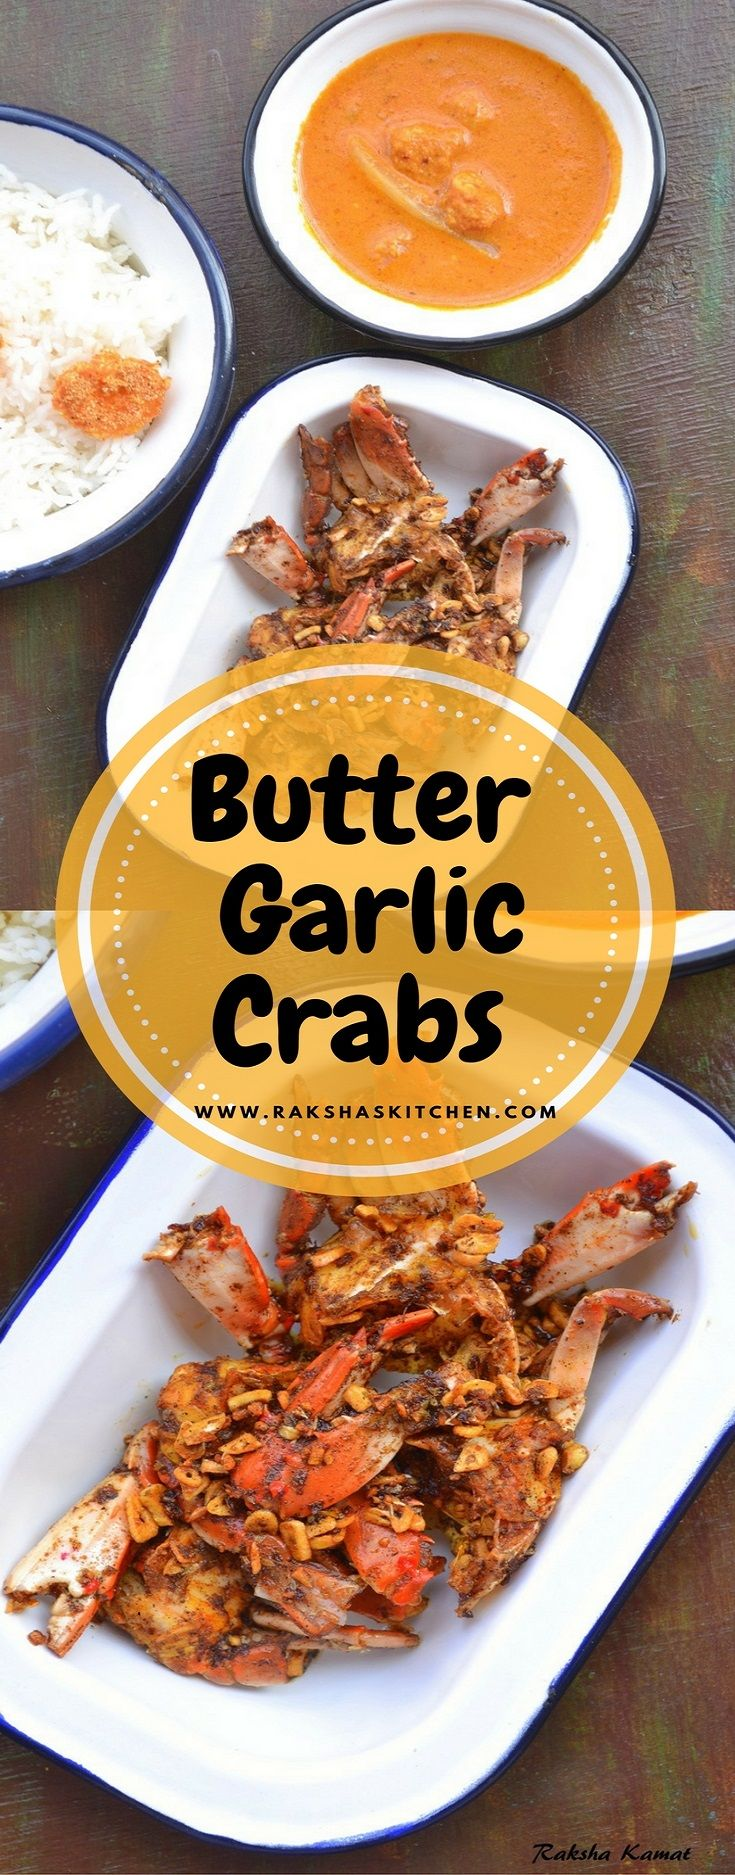 Butter Garlic Crabs #crabs #fish #shellfish #seafood #crabrecipe #starters